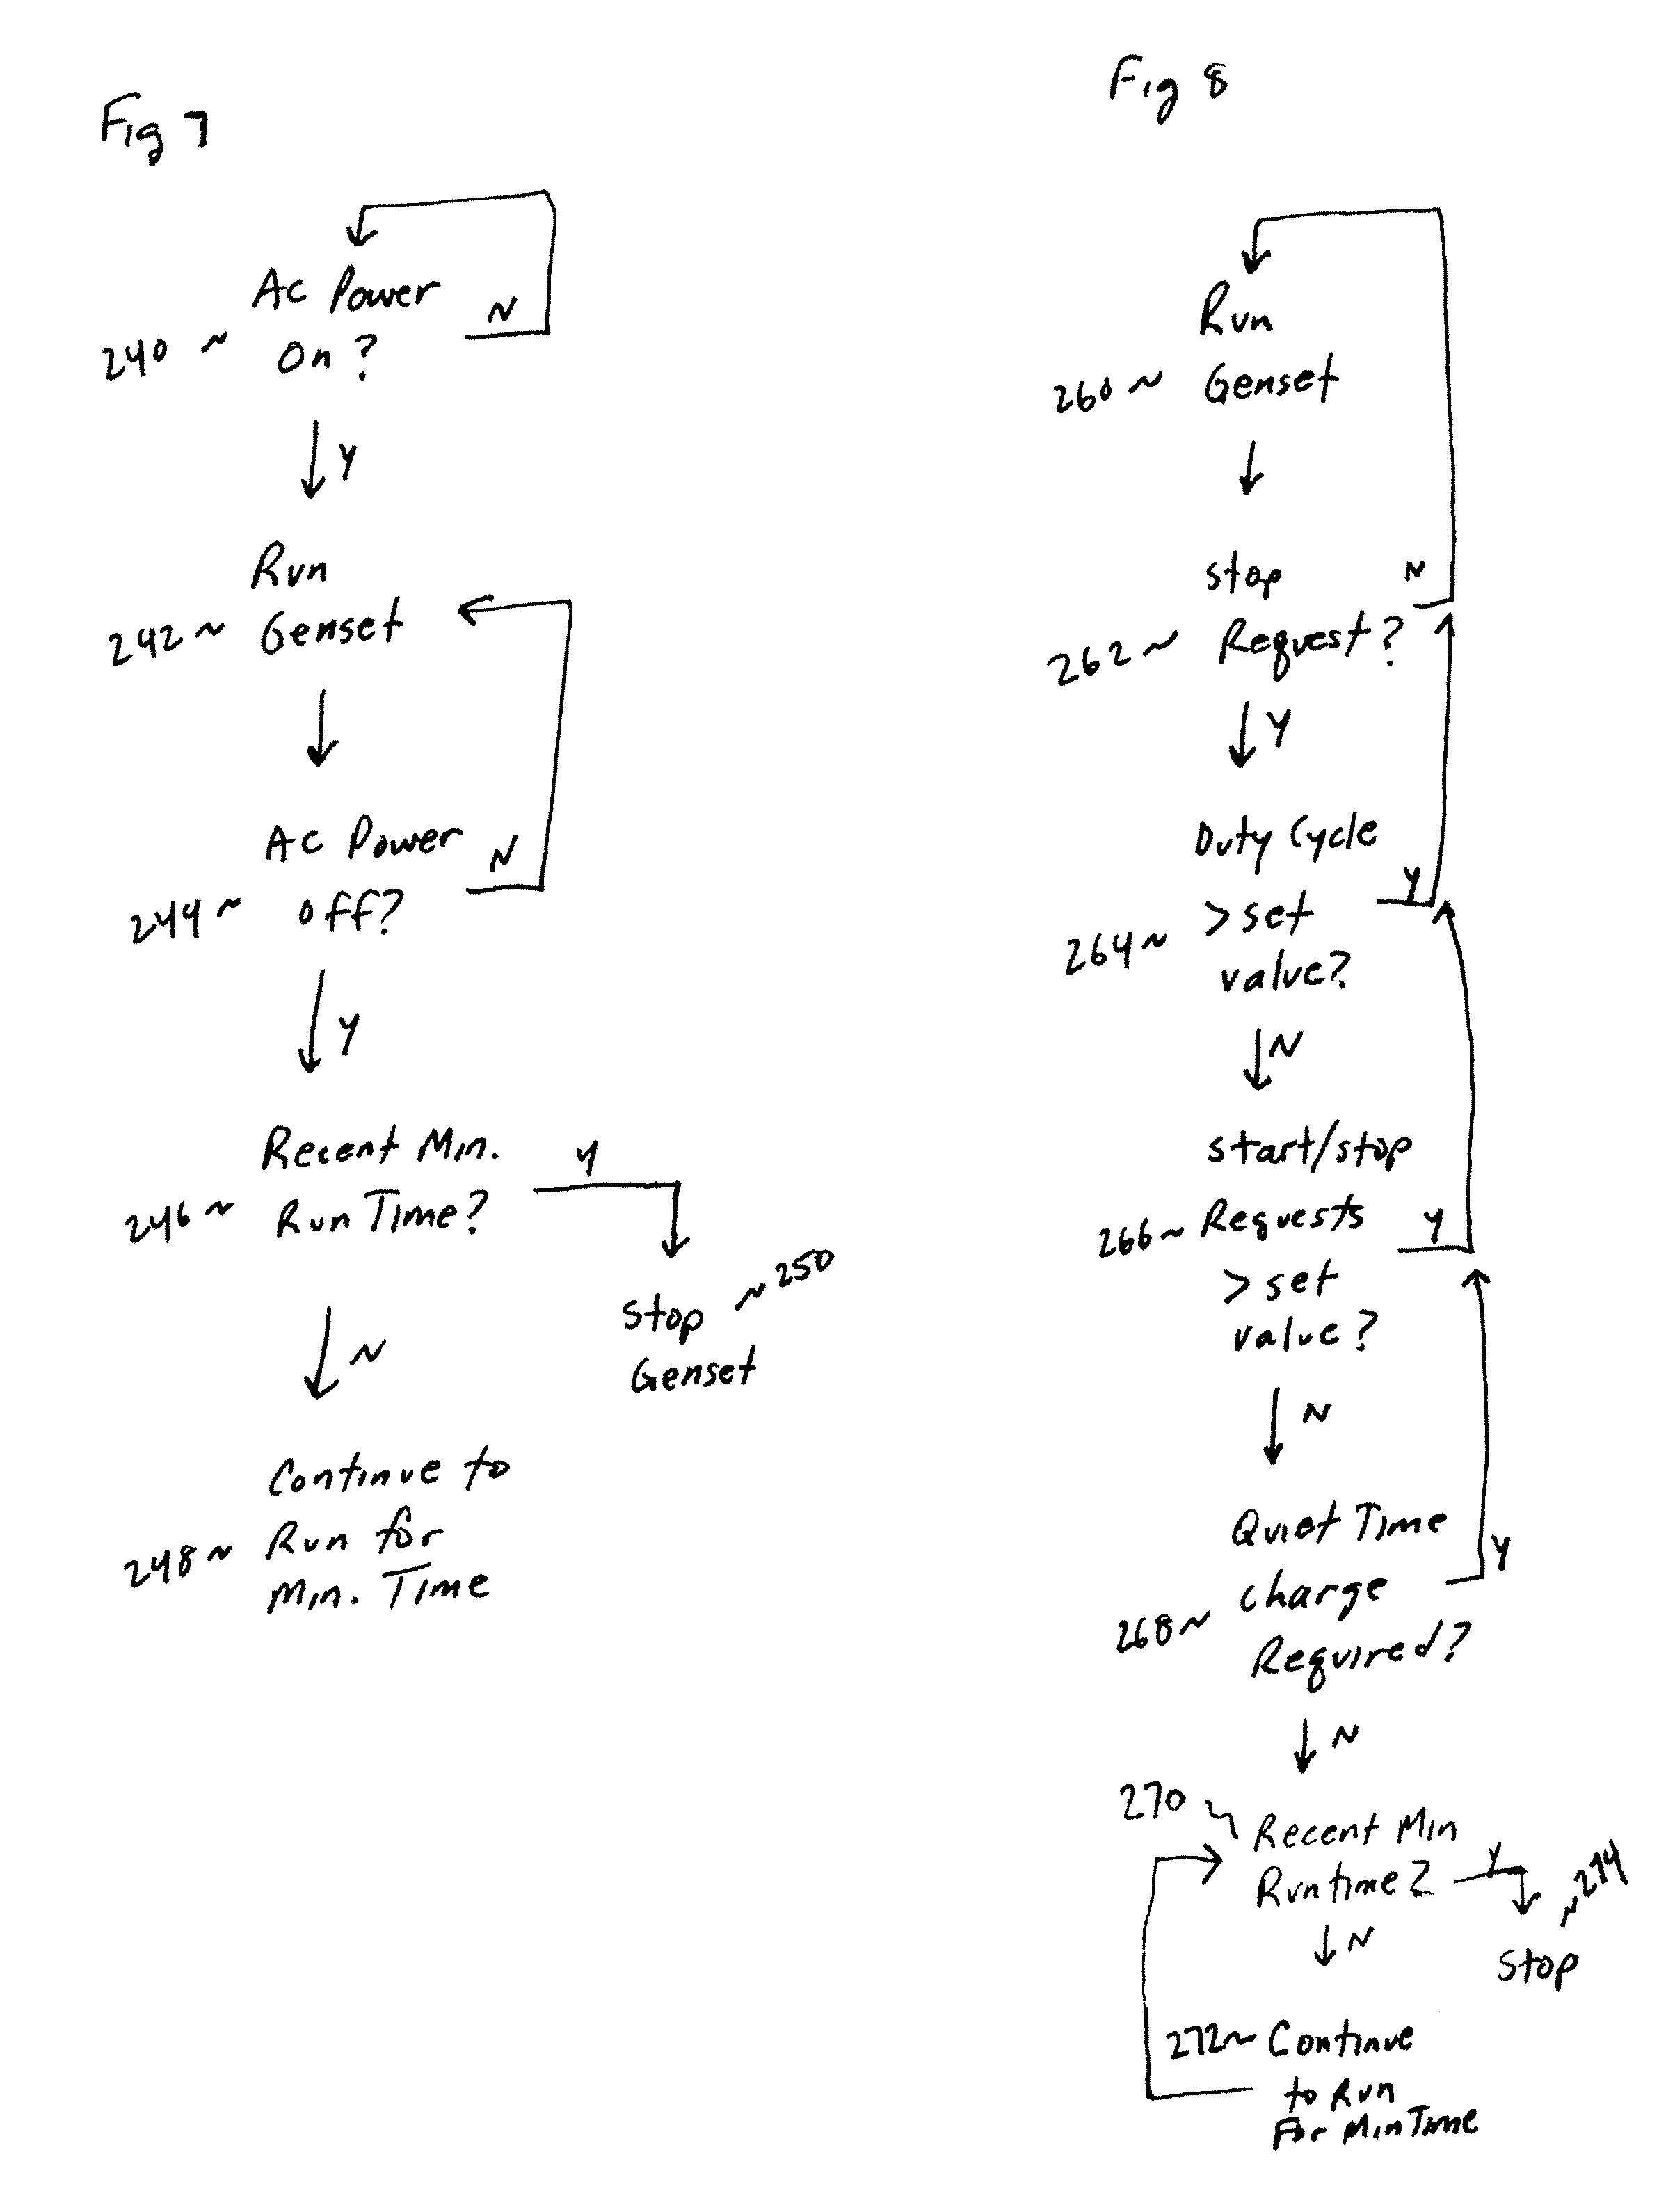 Onan Microlite 2800 Wiring Diagram 34 Images Emerald Generator Ther With D00007 4000 Parts Free Image About 3 Rv Together